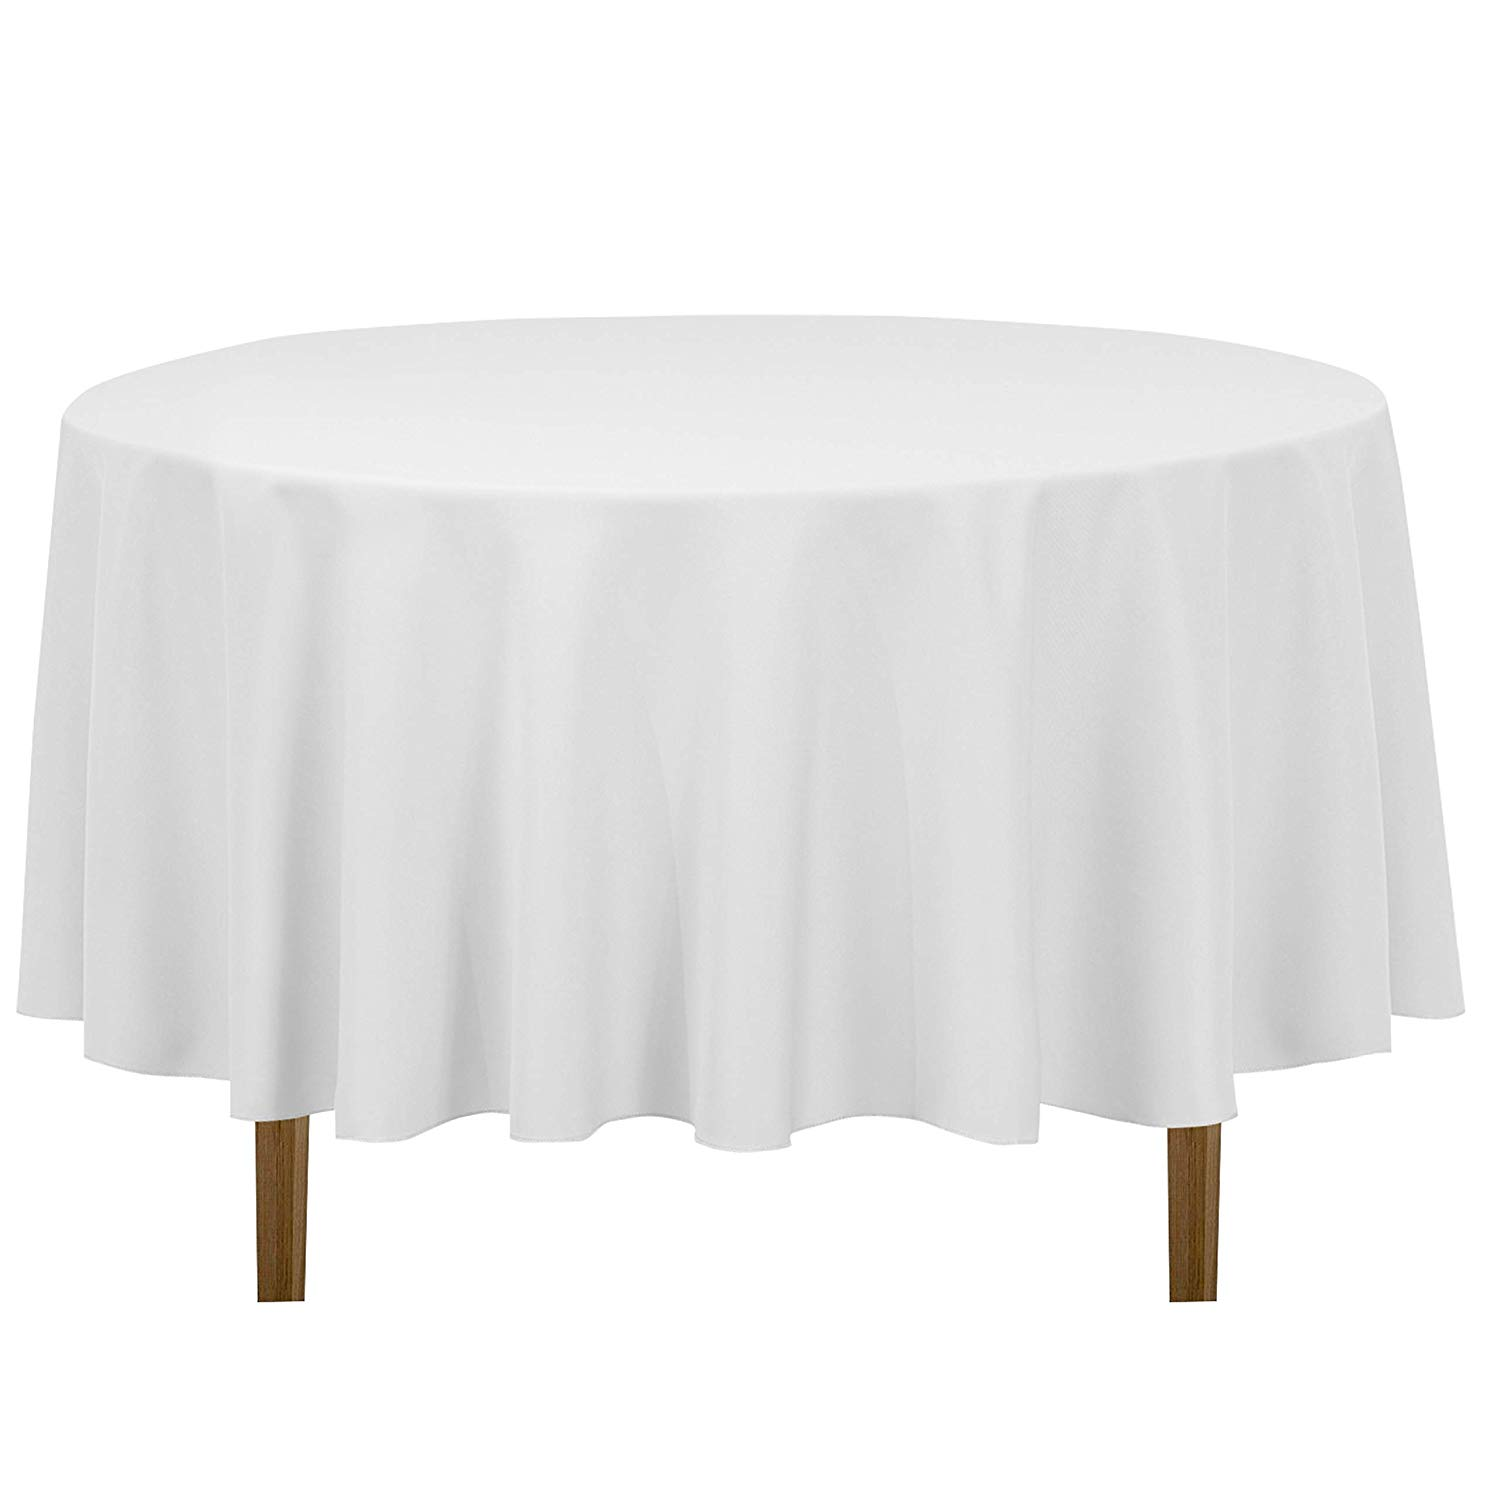 linentablecloth inch round polyester tablecloth accent white home kitchen pier one imports table and chairs arcadia furniture market patio umbrella hairpin legs industrial small